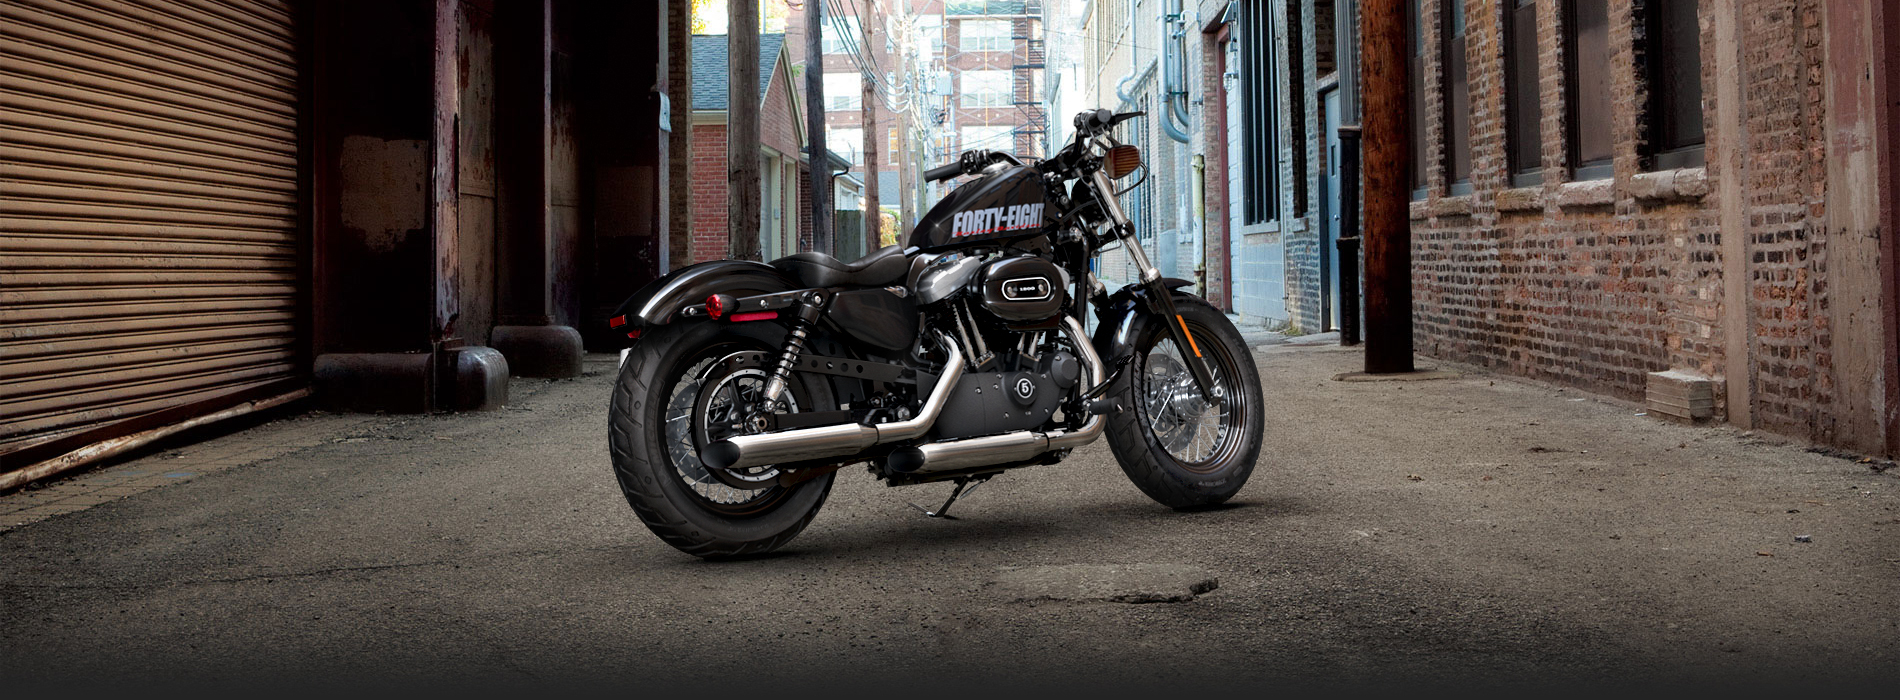 2016 Sportster Forty Eight Harley Davidson India 1900x700